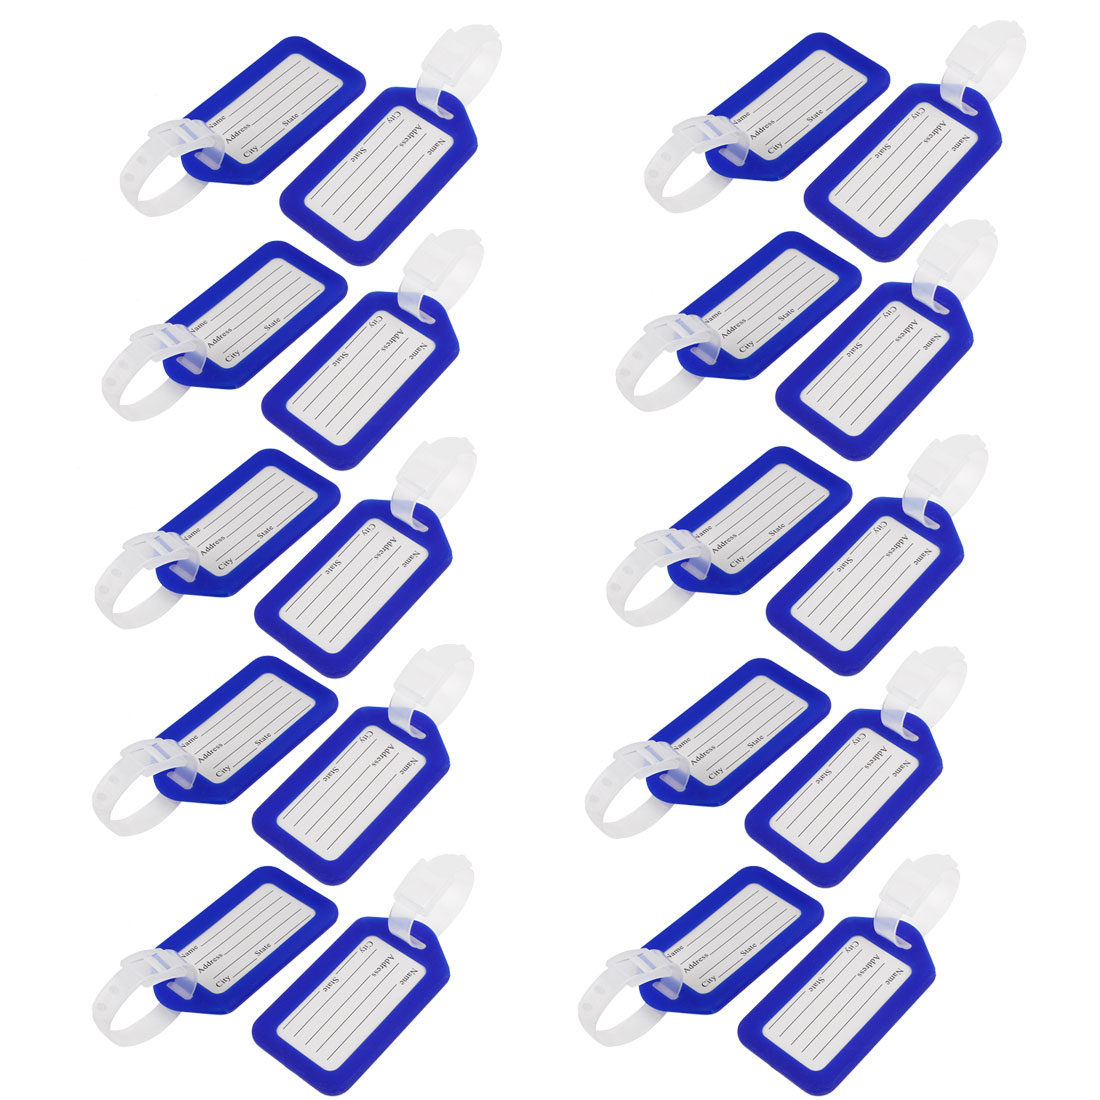 20 Pcs Blue White Hard Plastic Suitcase Bag Name Label Travel Luggage Tags